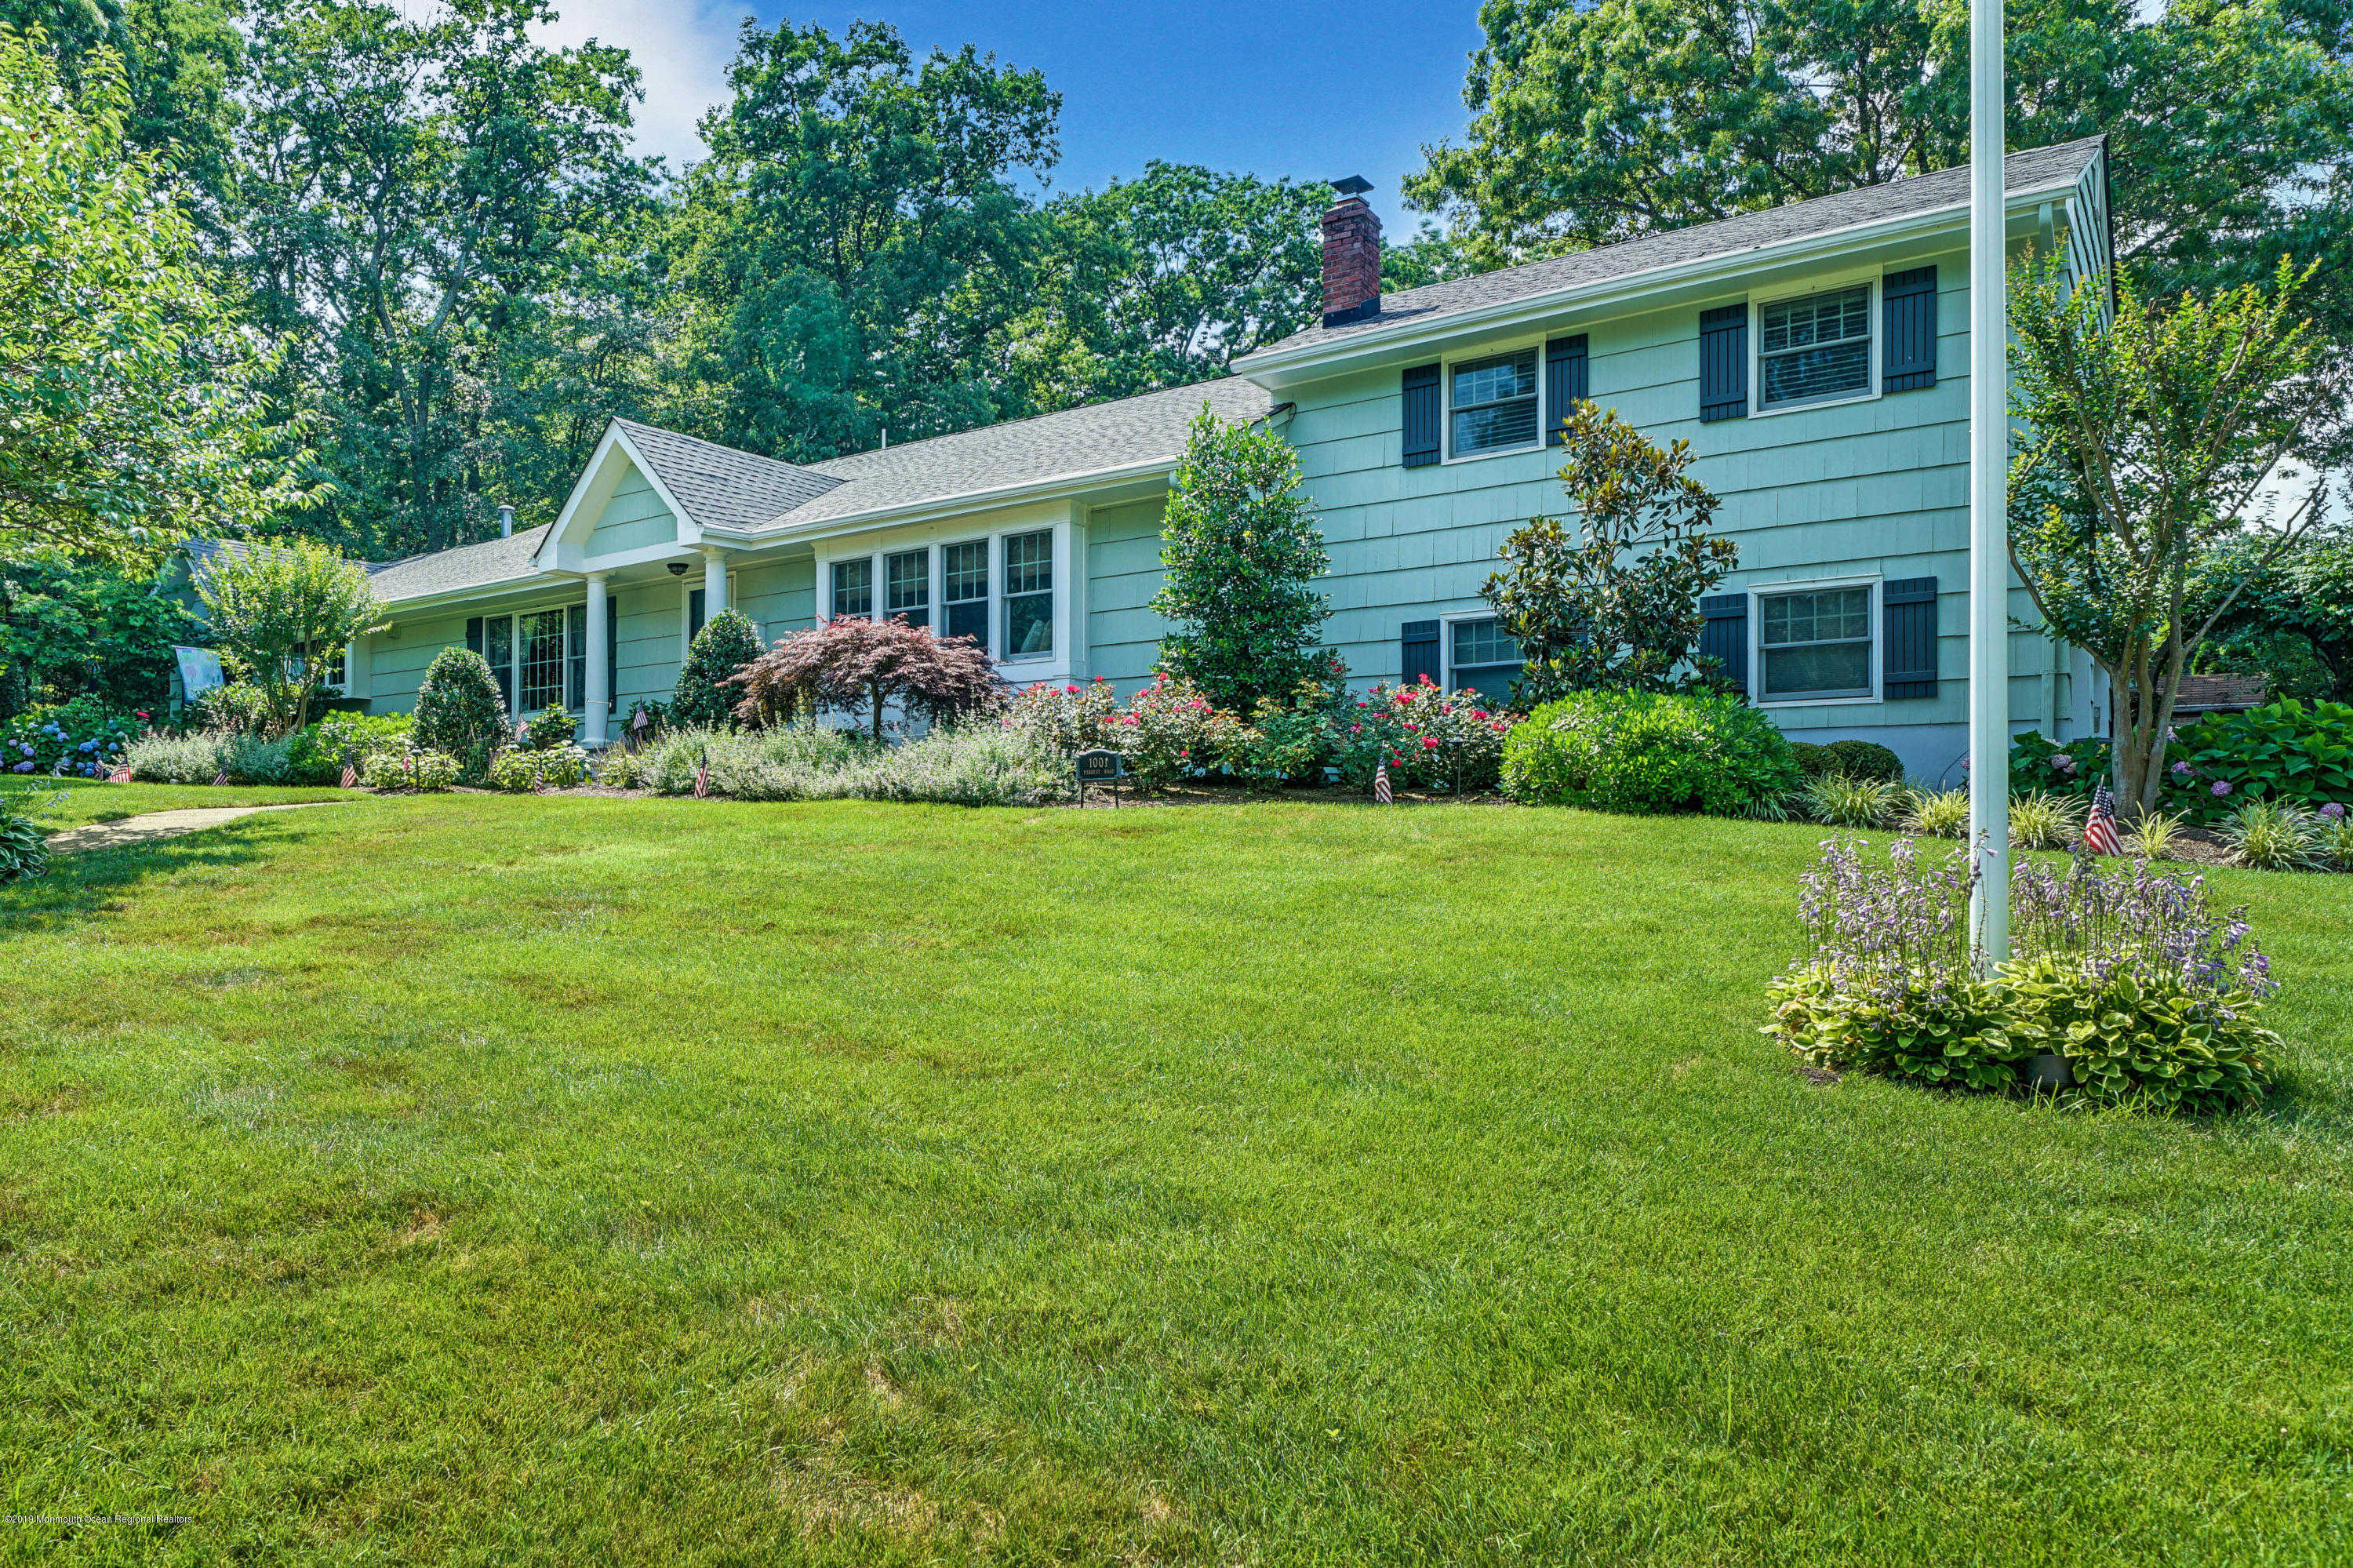 1001 Forrest Road, Brielle (bri), NJ 08730 now has a new price of $799,000!